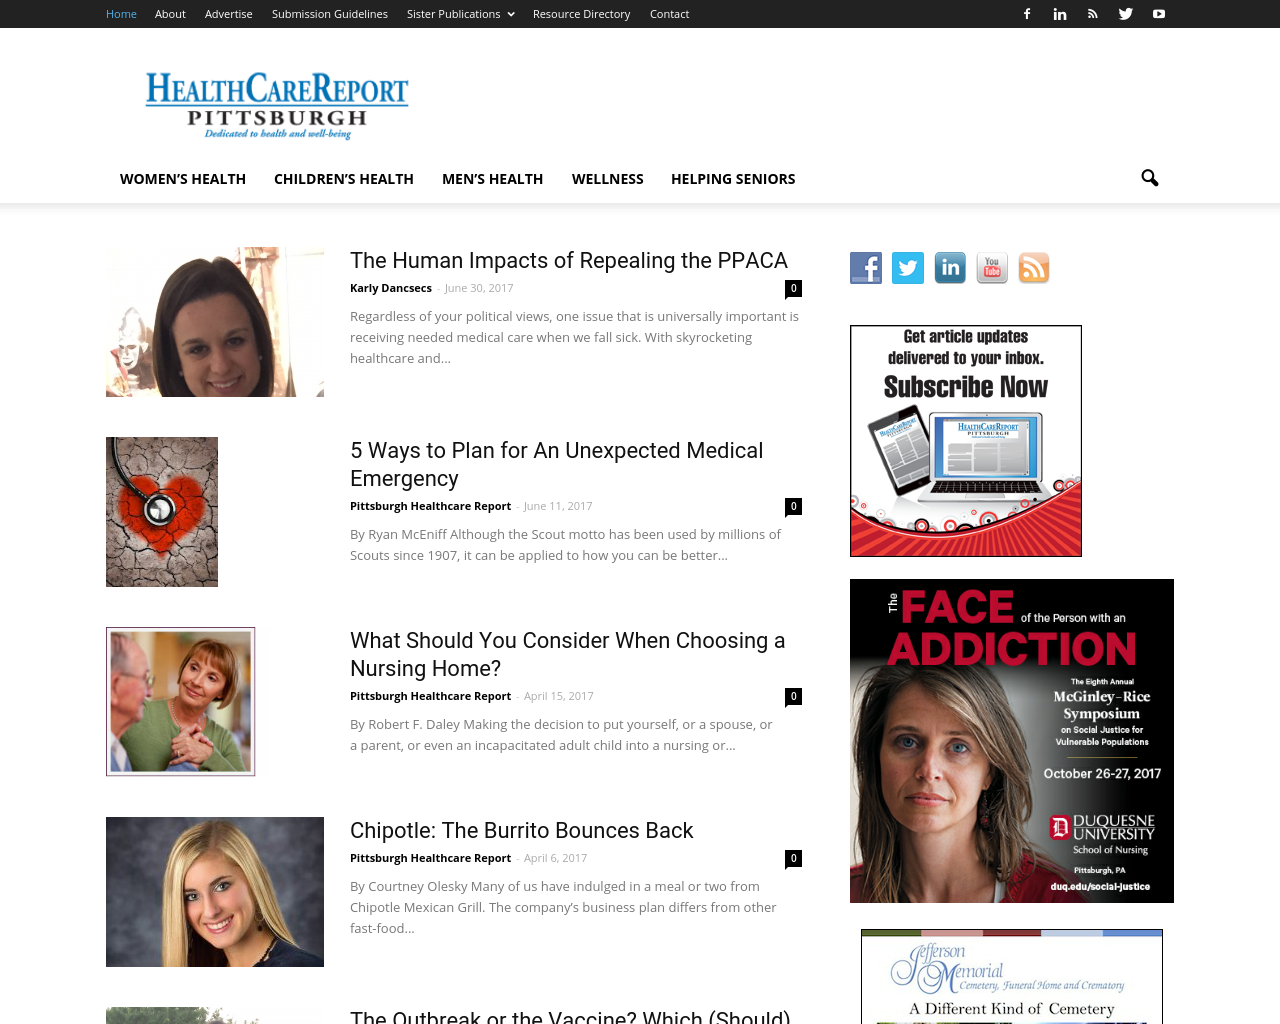 Health-Care-report-Pittsburgh-Advertising-Reviews-Pricing